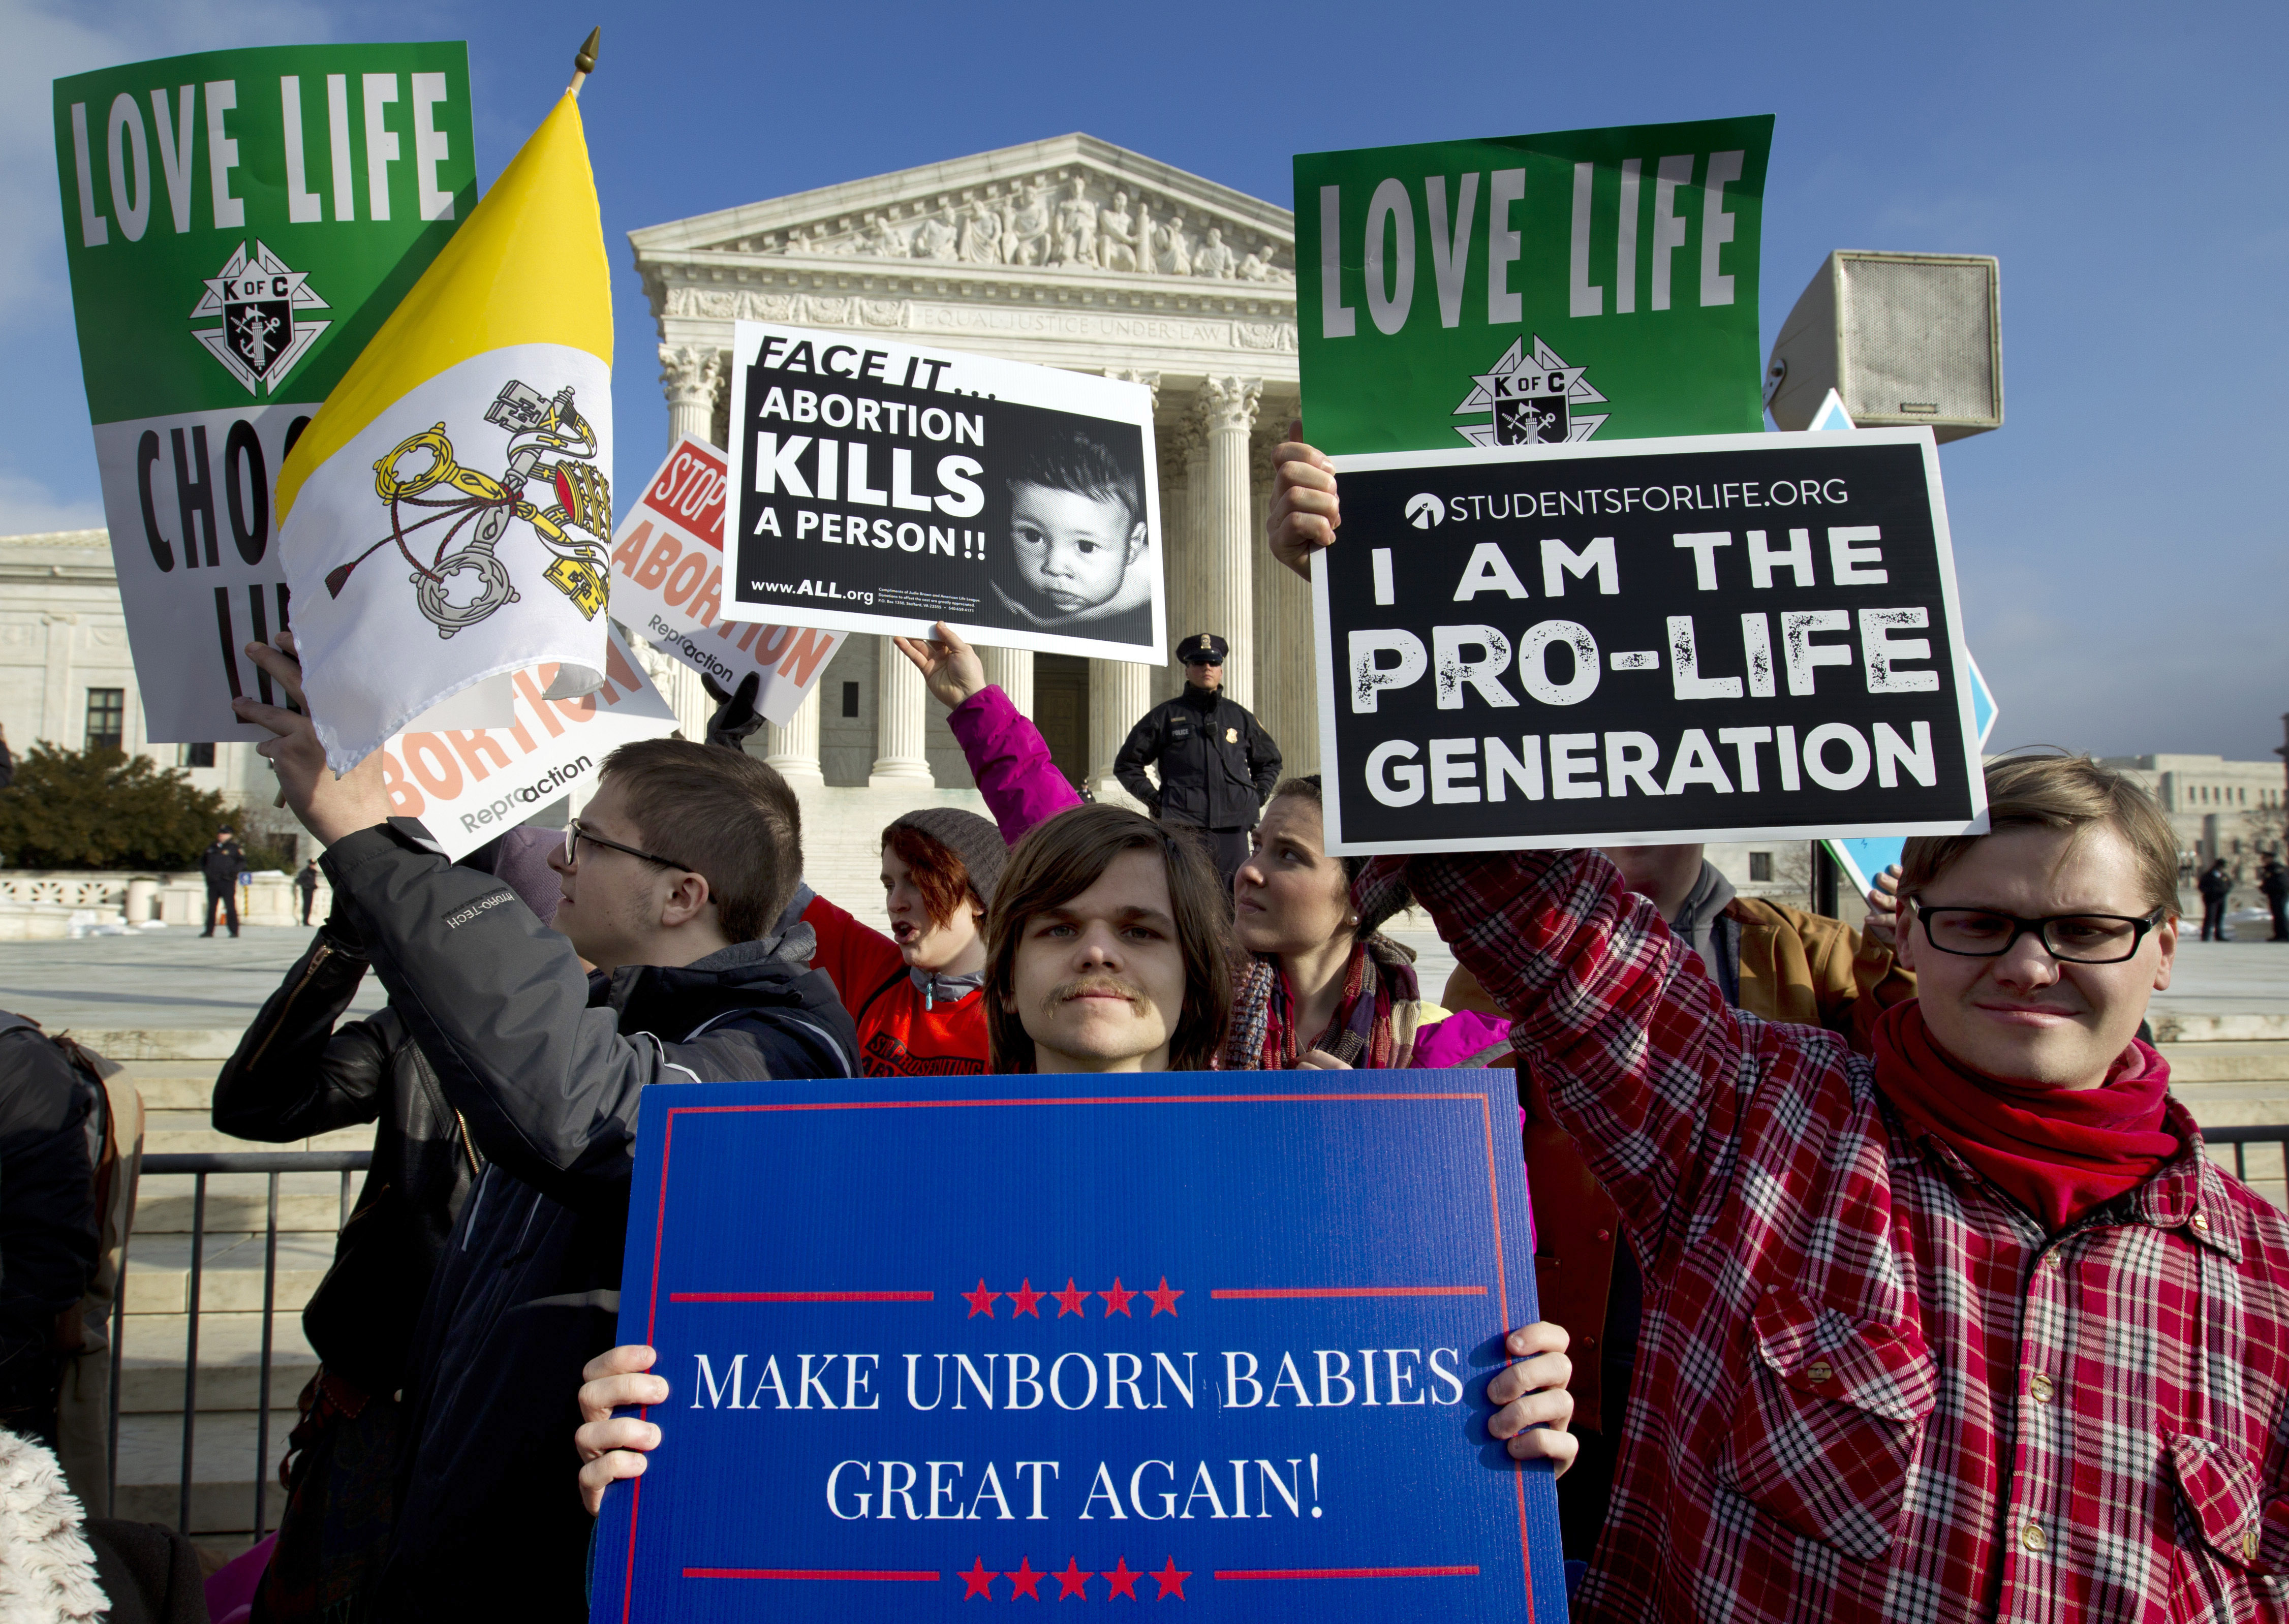 Anti-abortion activists protest outside of the U.S. Supreme Court, during the March for Life in Washington on Jan. 18, 2019. (Photo: Jose Luis Magana/AP)